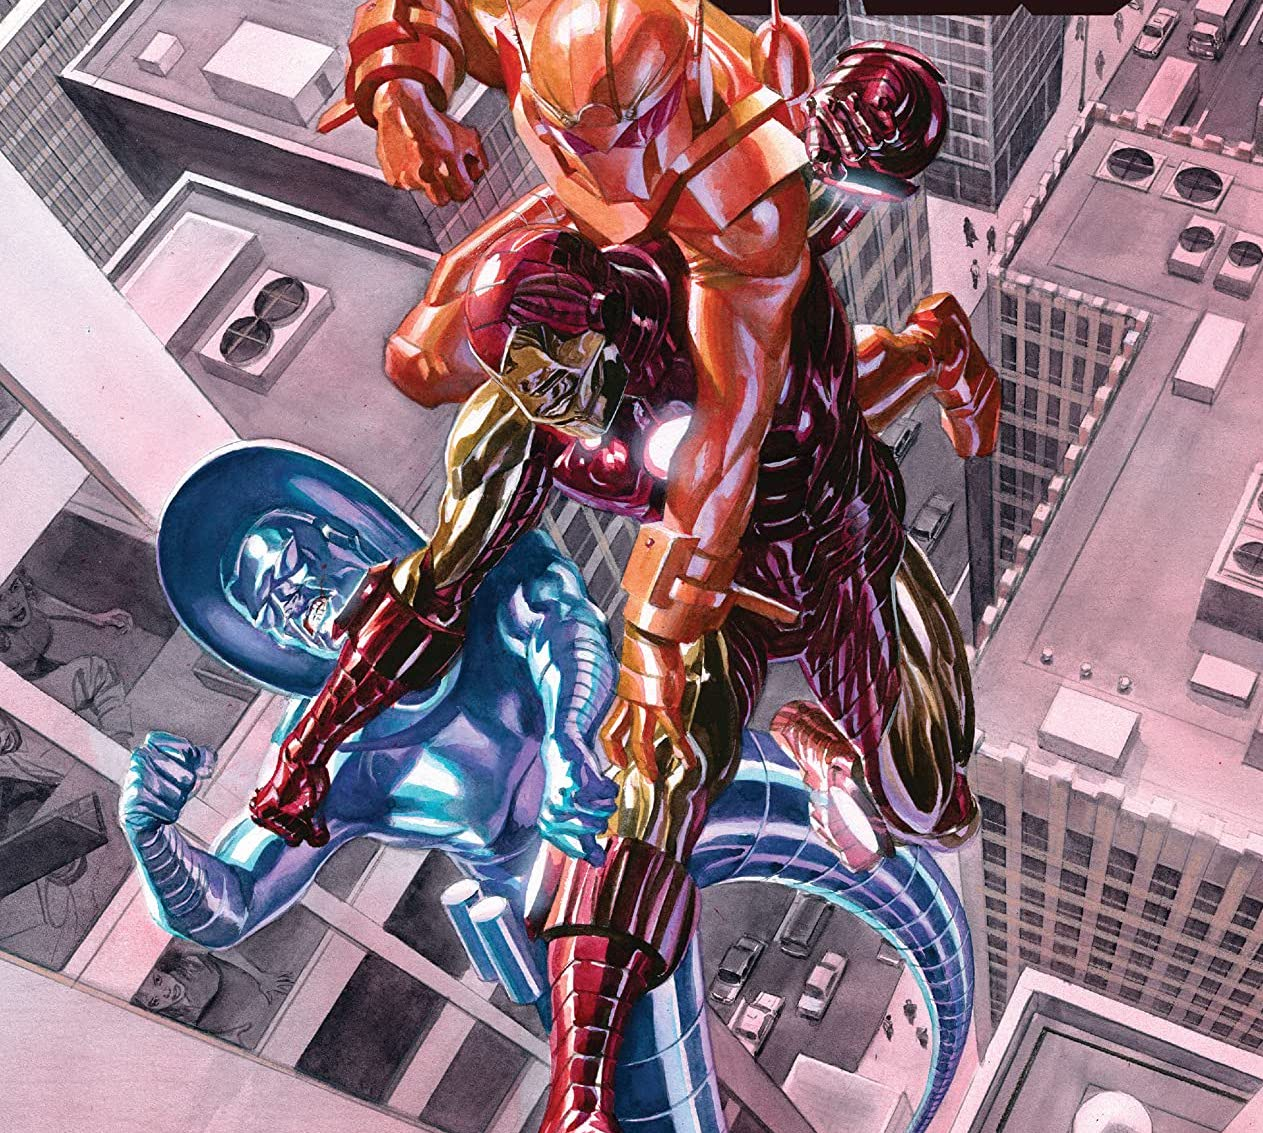 'Iron Man' #11 reveals who is pulling his strings